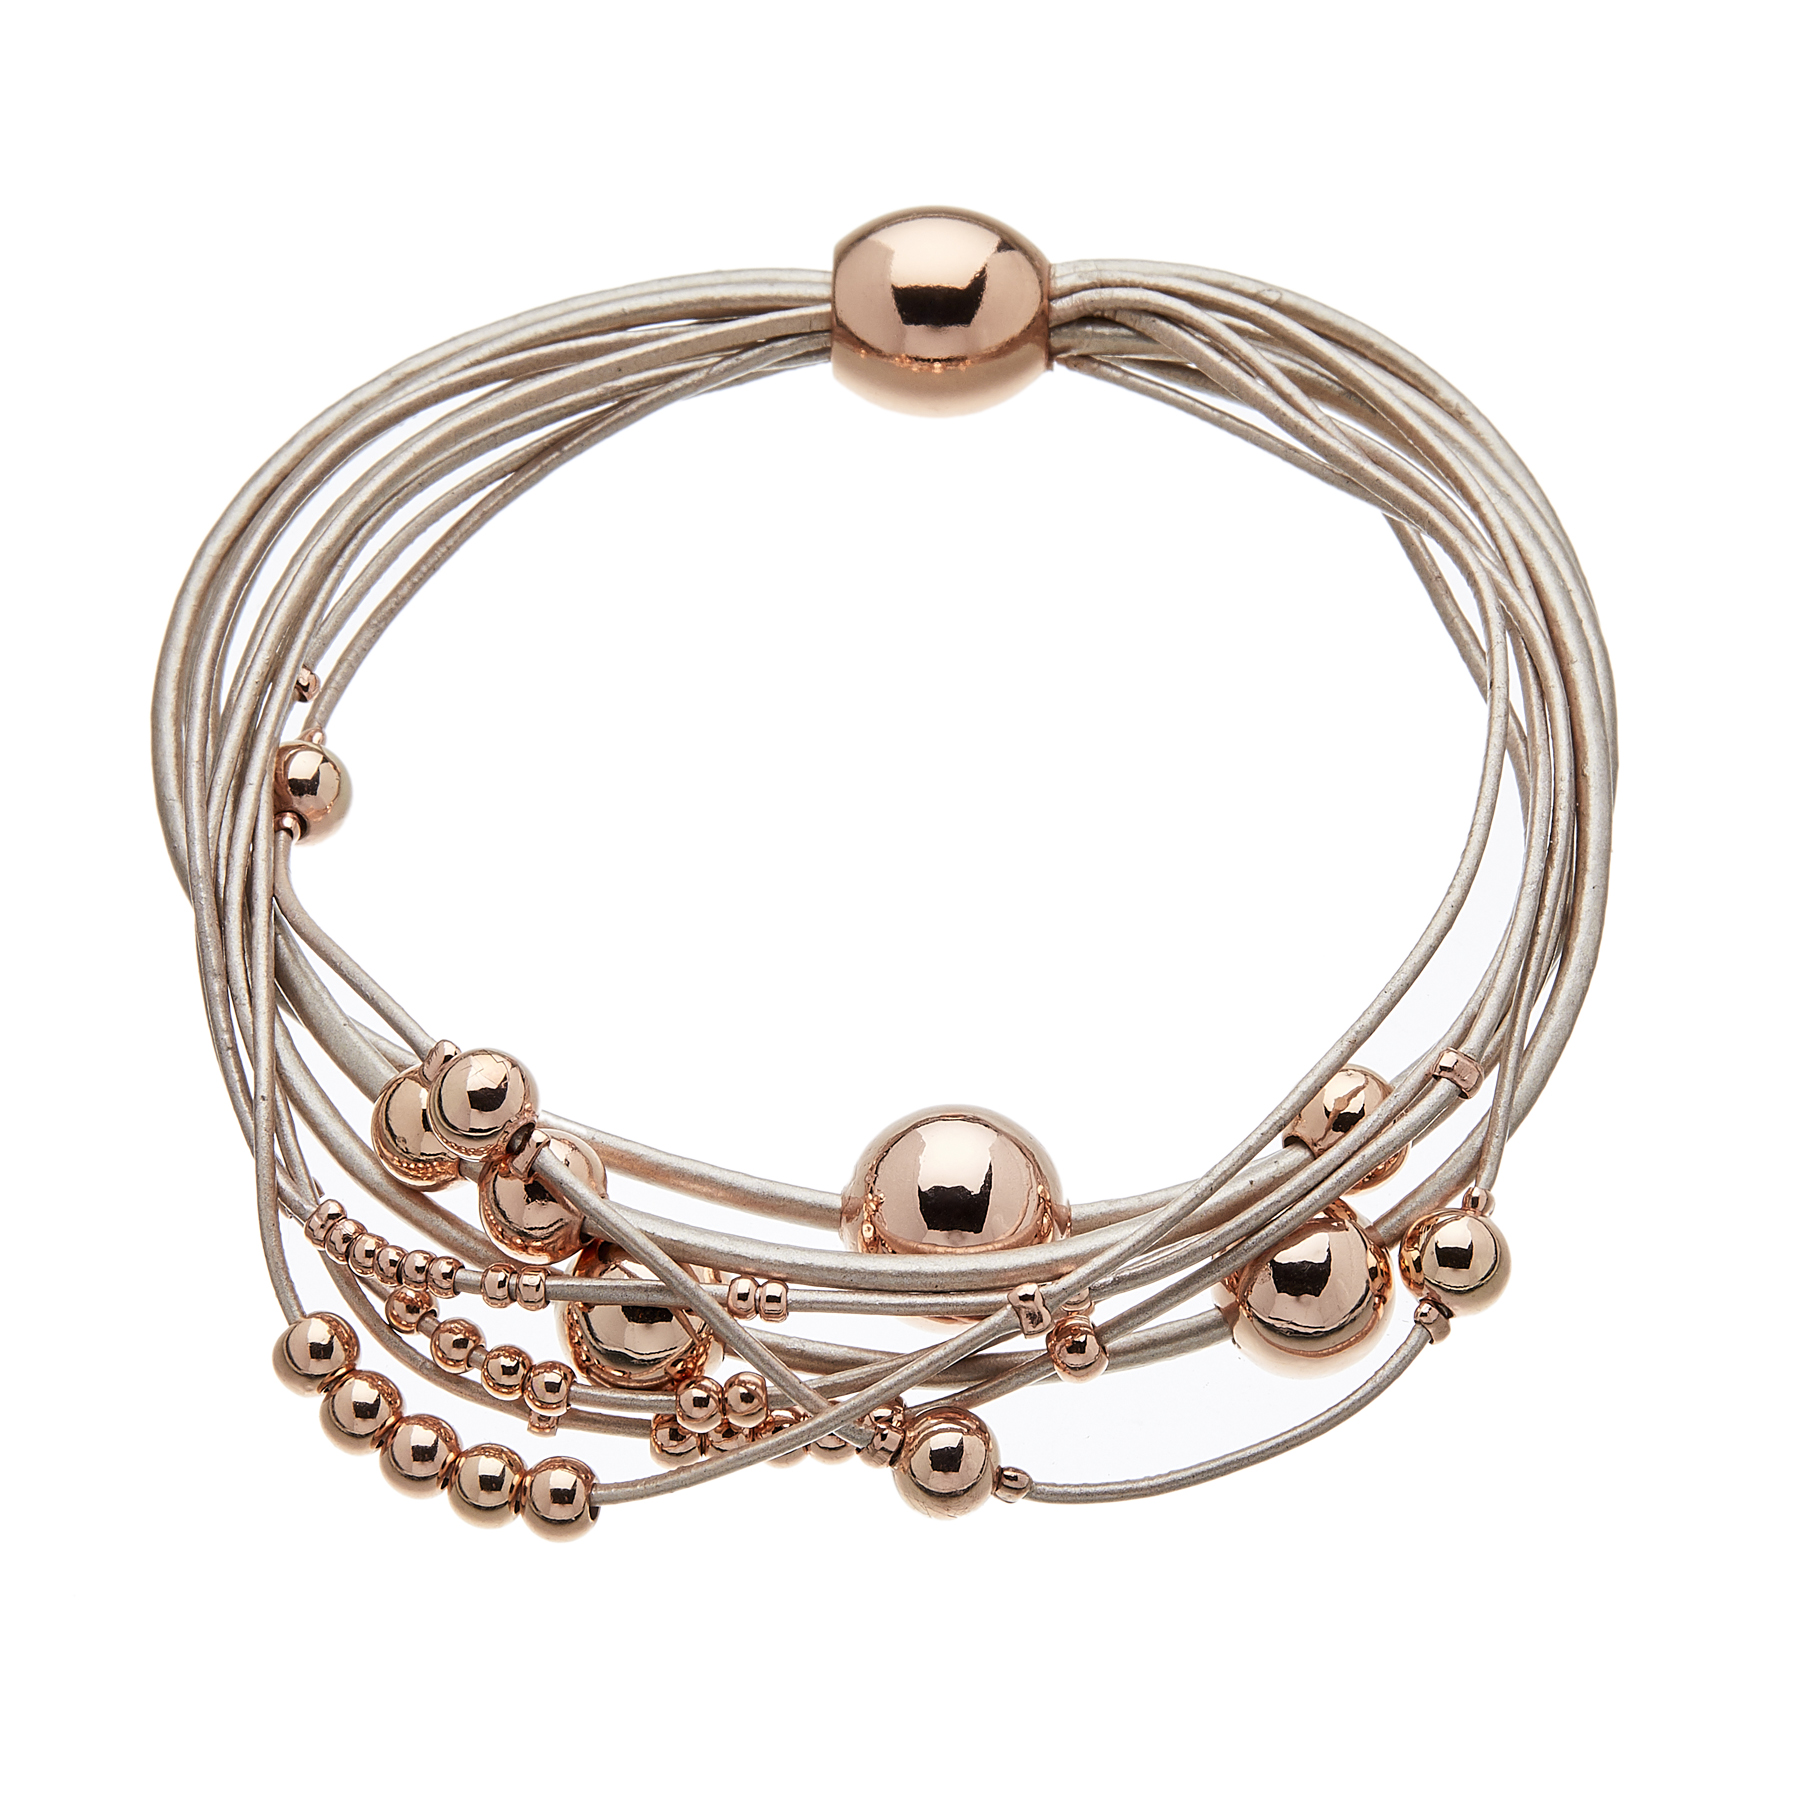 Bracelet with pink leather strands and sliding rose gold beads - Ruth P